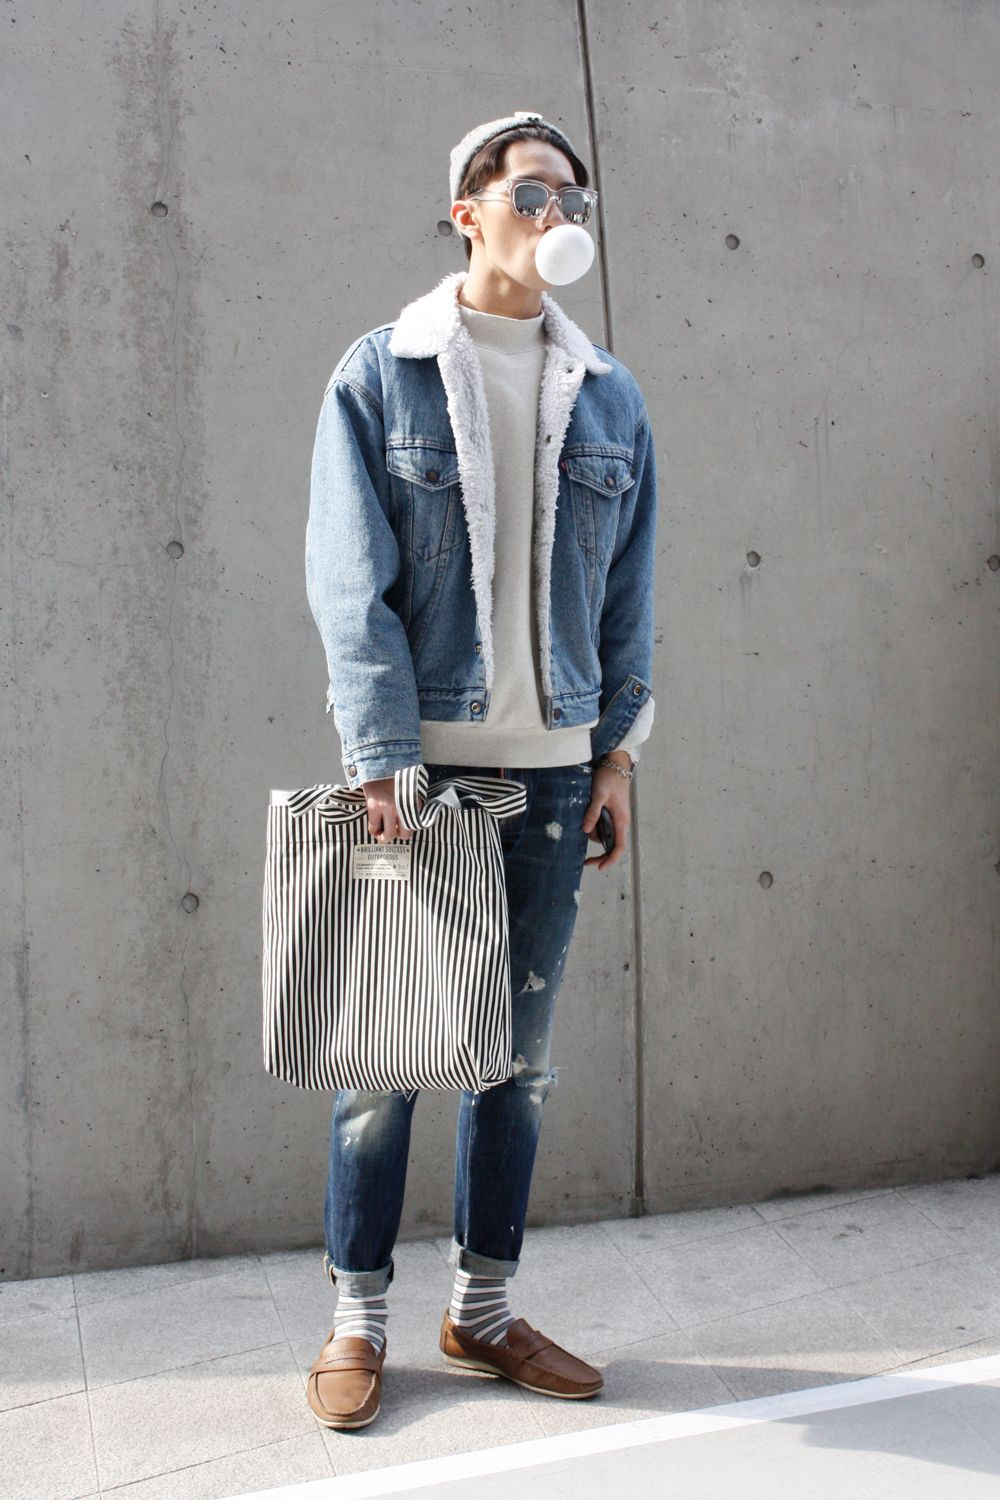 Double Denim Bubble Popping <8 THE WHITEPEPPER at Seoul Fashion